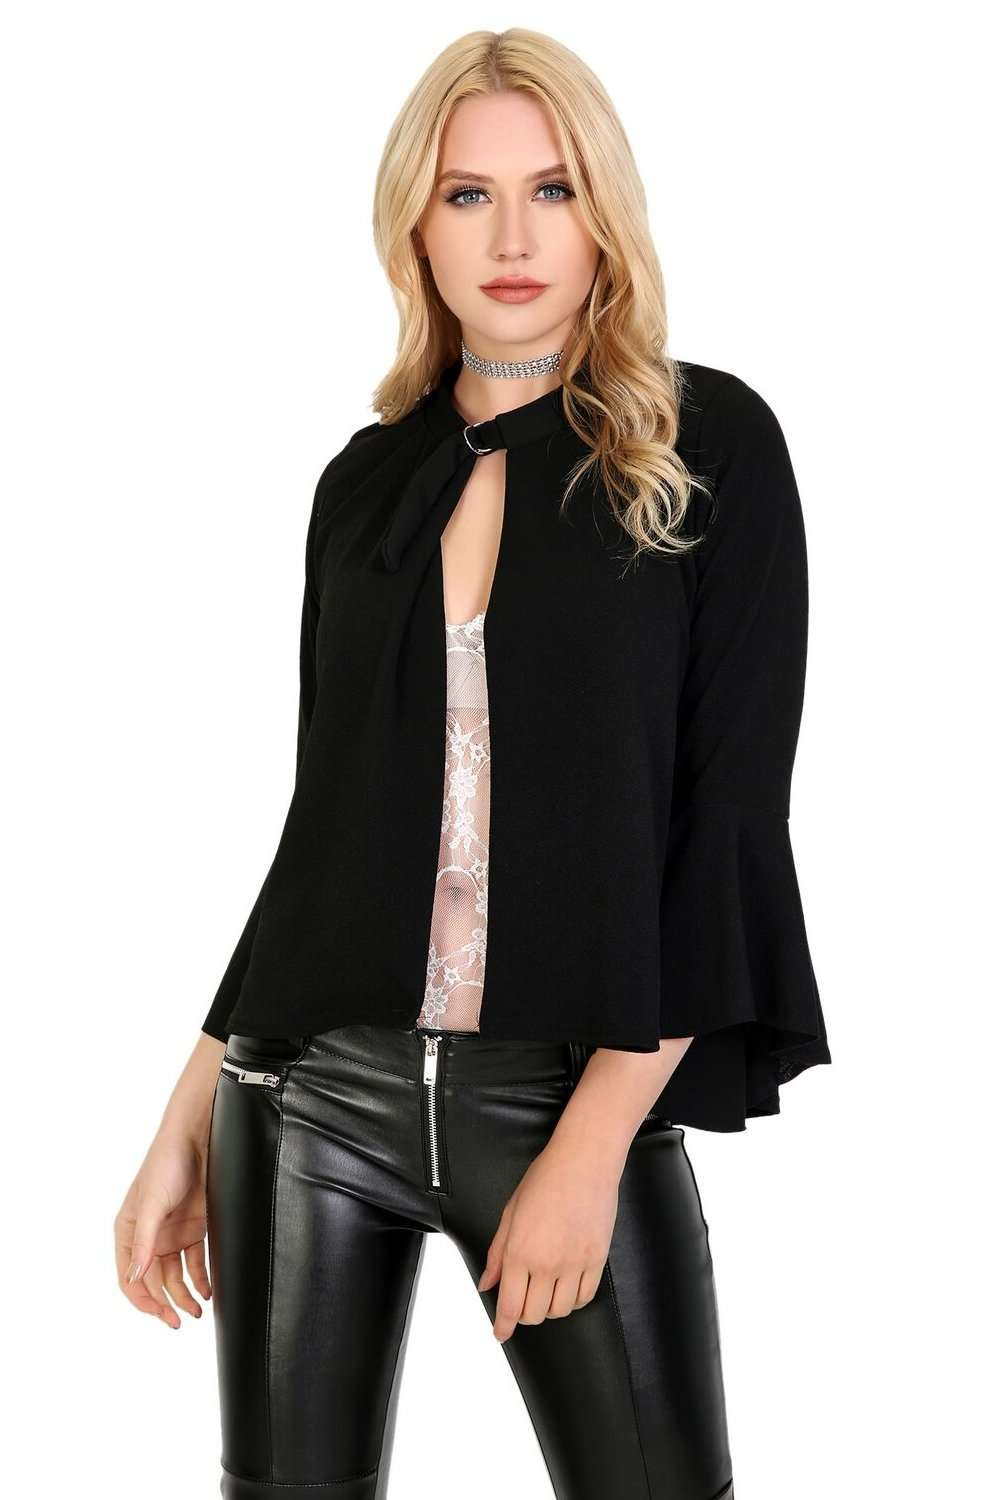 Sophia Buckle Neck Frill Sleeve Jacket - bejealous-com